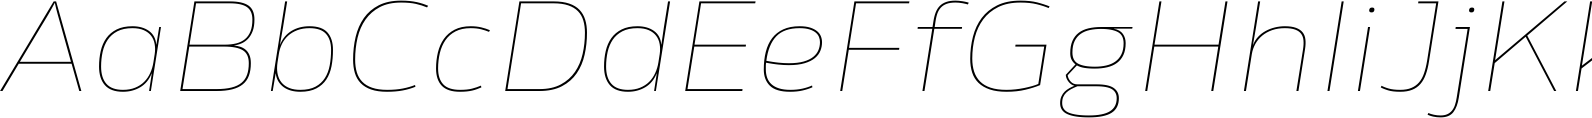 Rleud Extended Ultra Light Italic Font